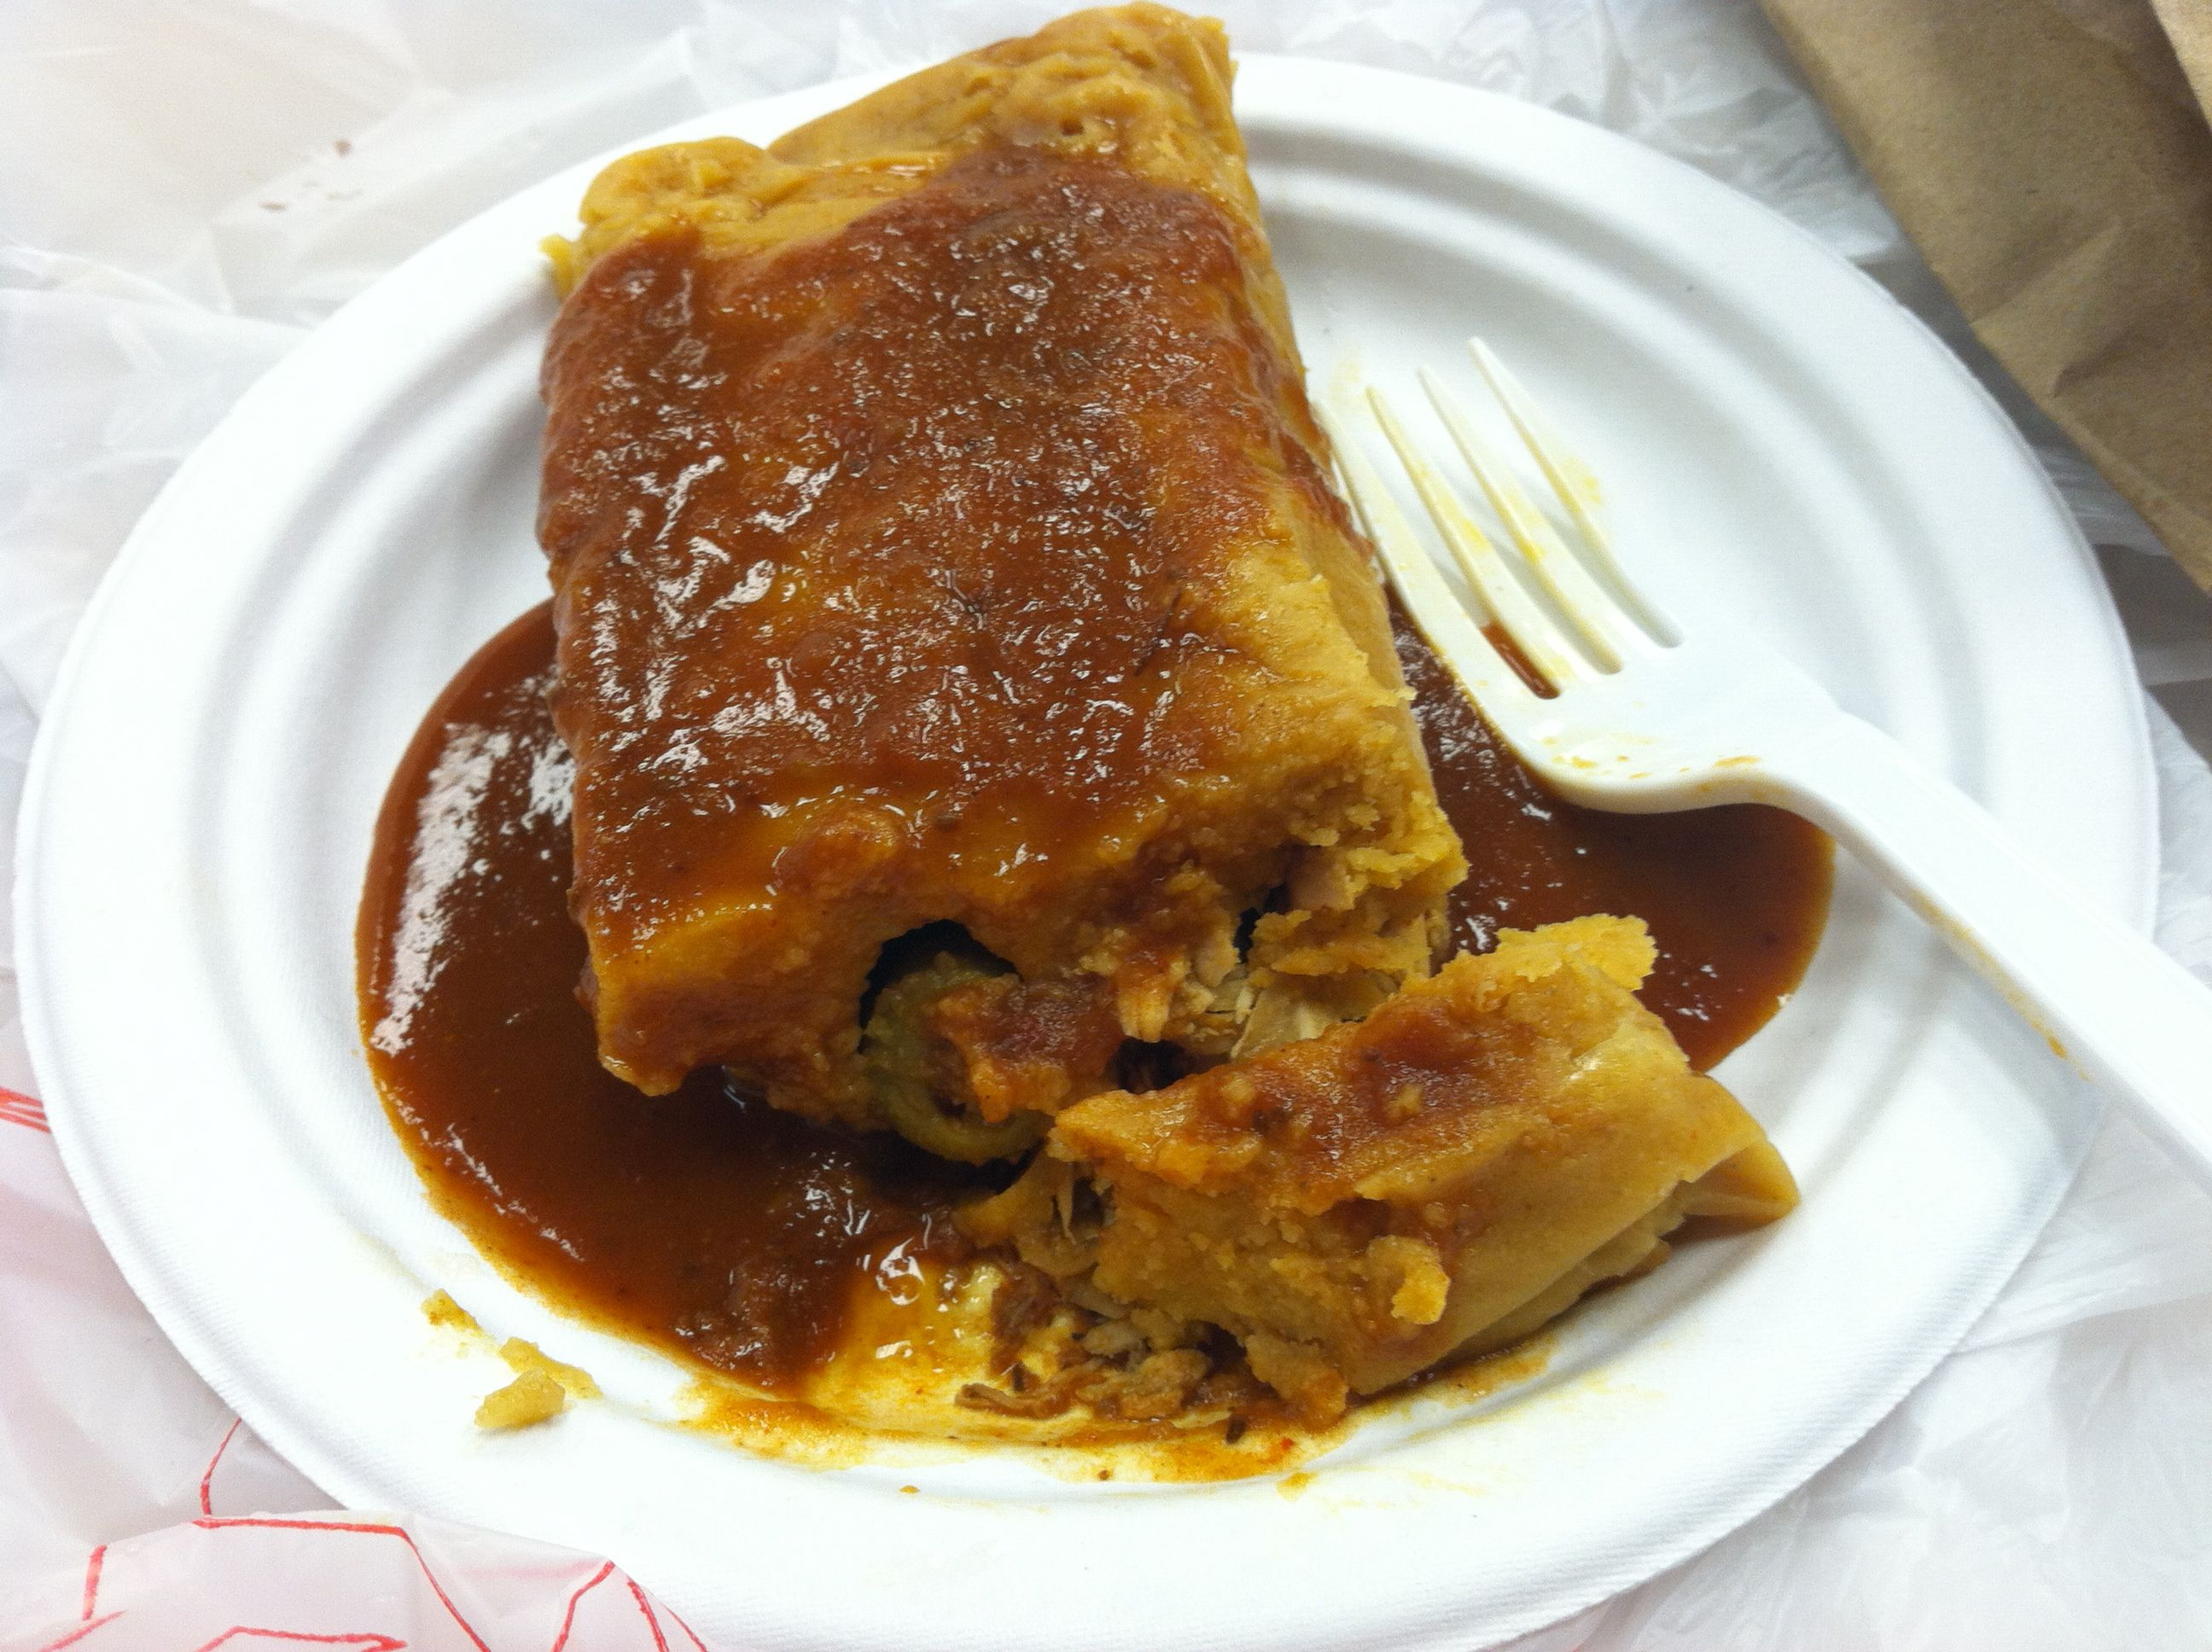 Tamale from Pilar's Tamales in Ann Arbor, MI